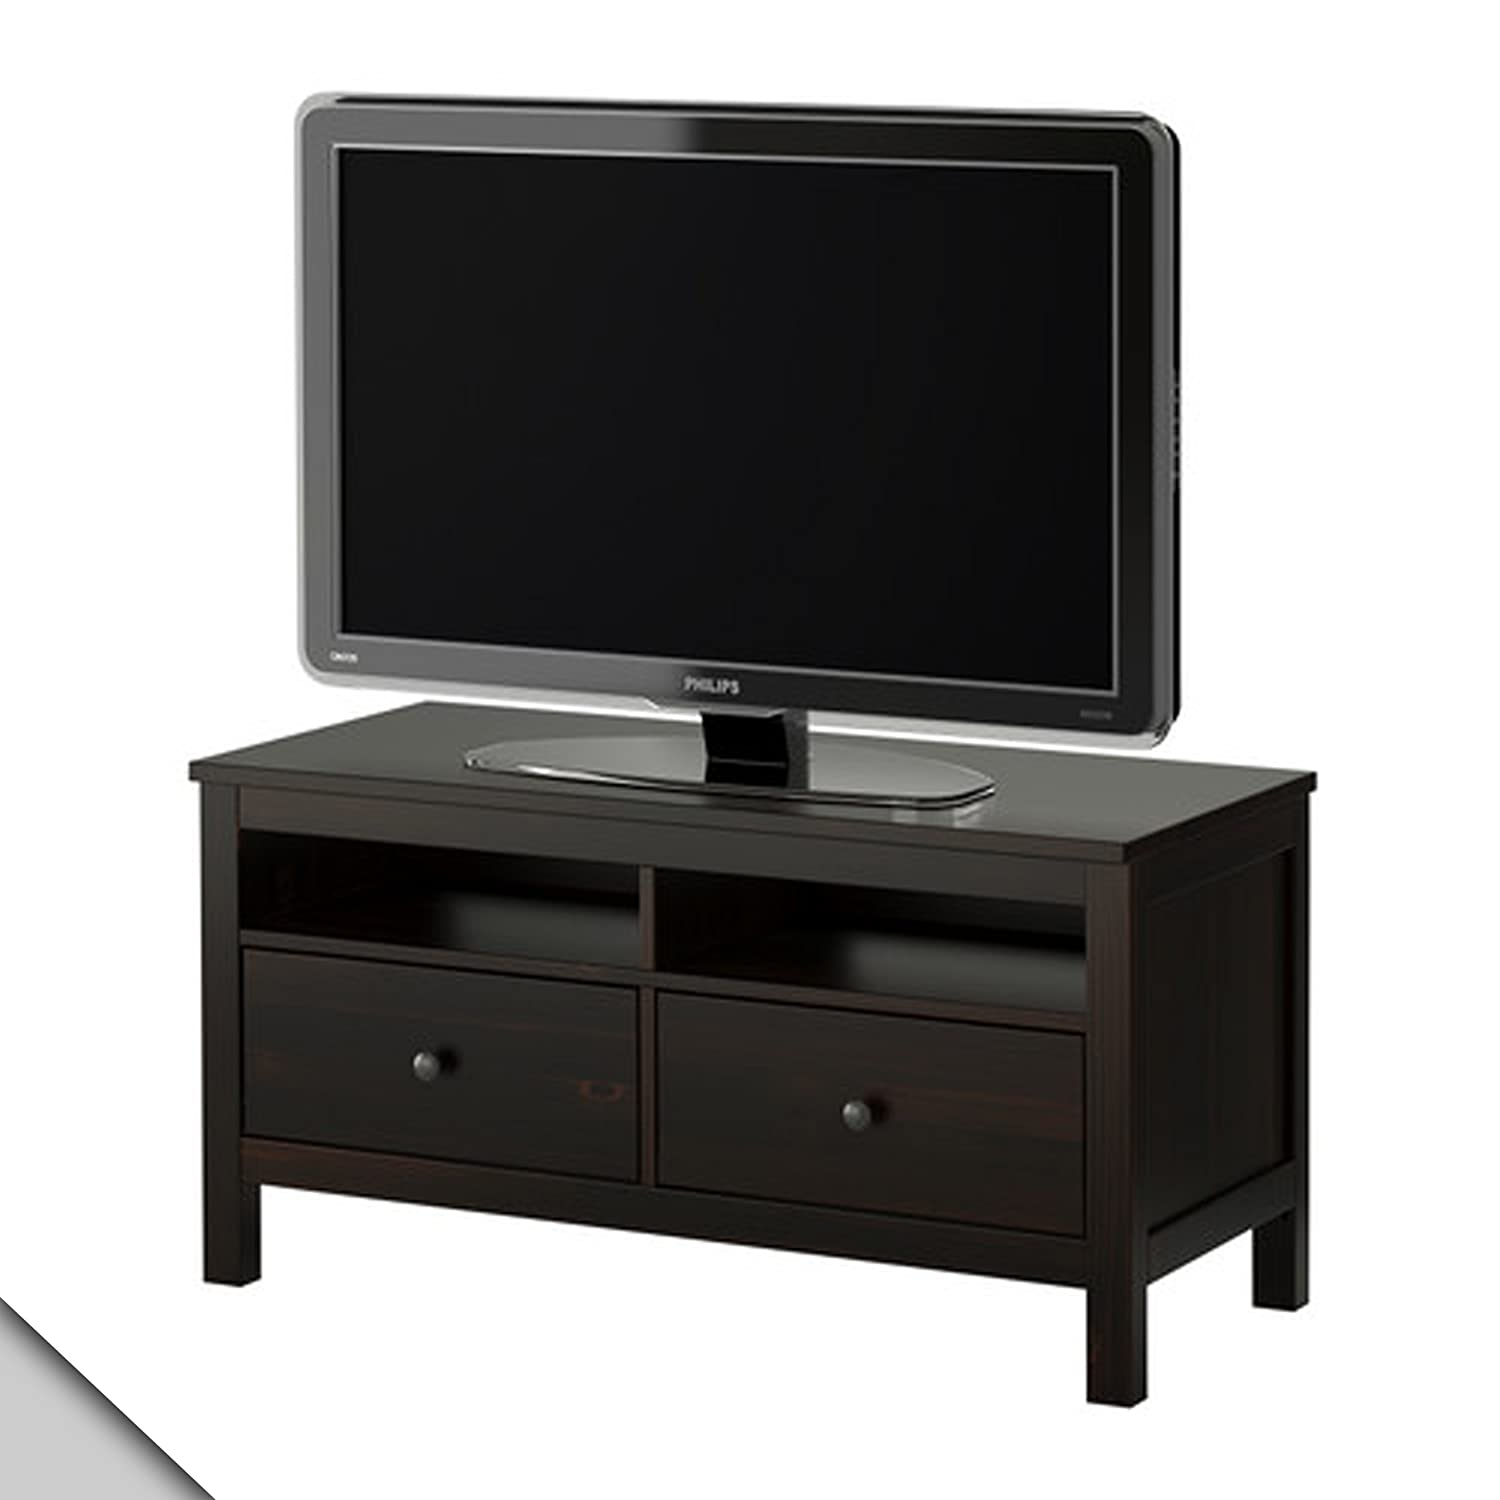 ikea hemnes tv unit black brown electronics